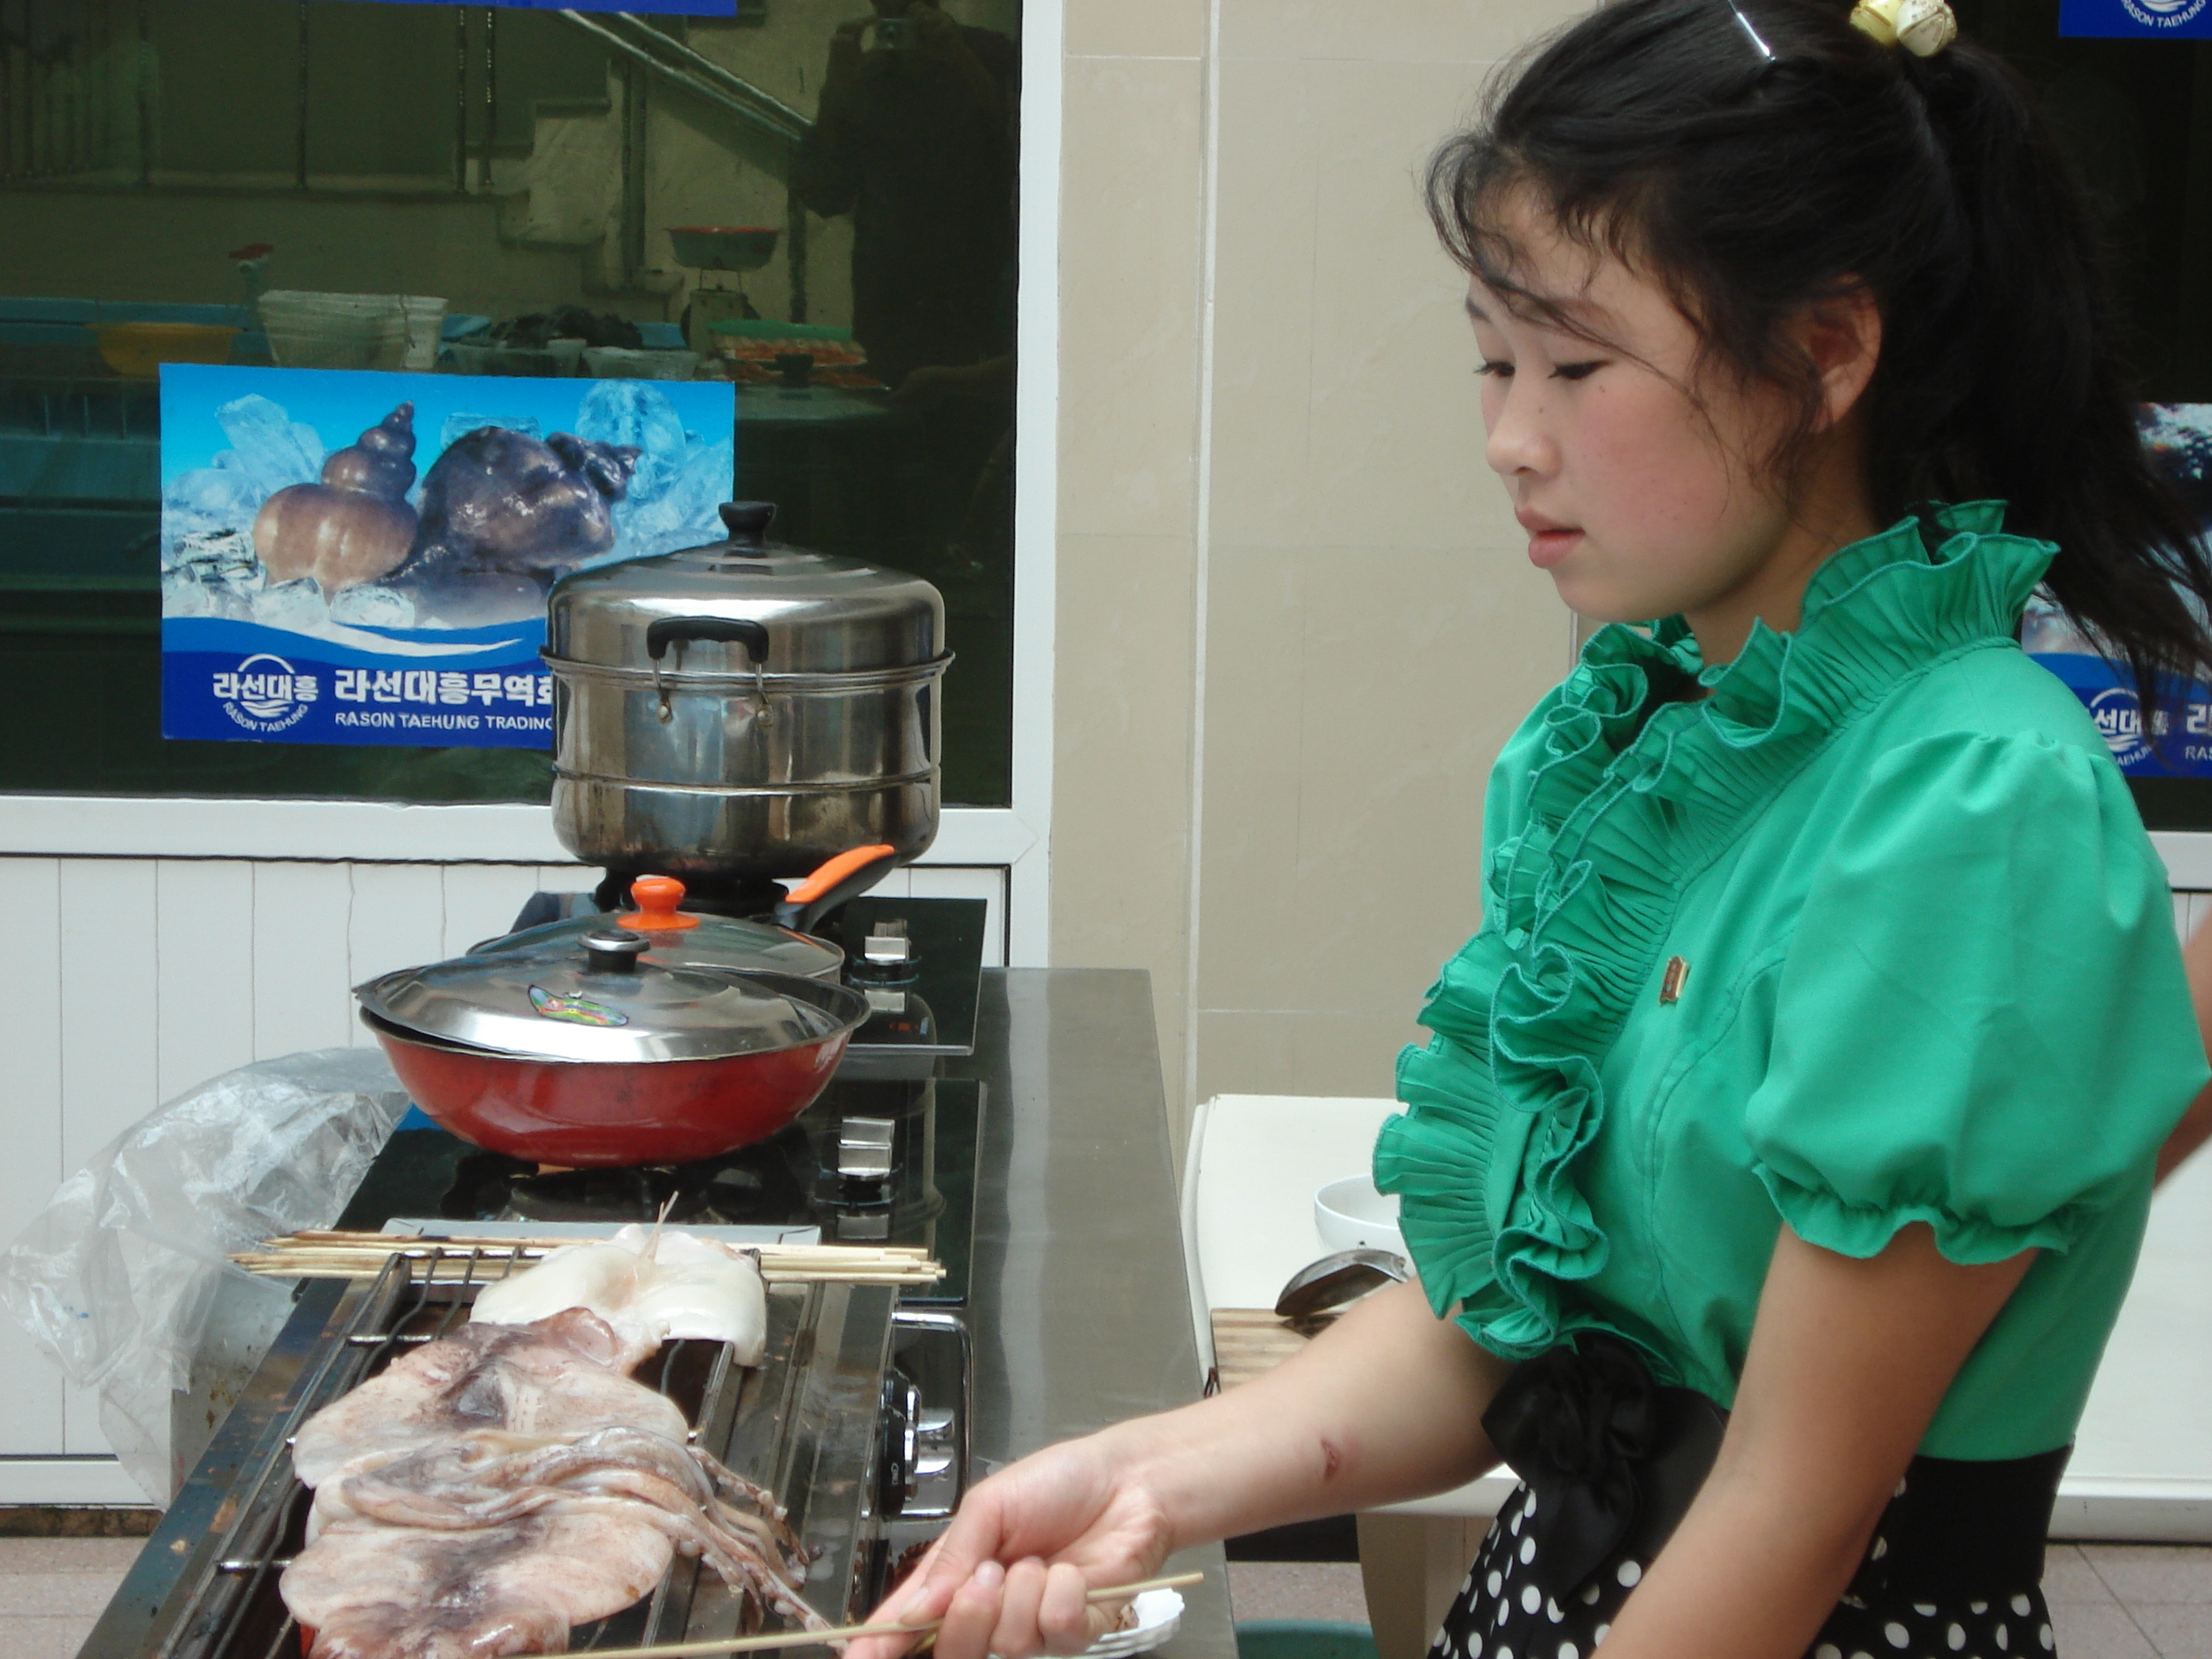 Taehung Company in Rason does seafood processing and will grill you up a mean cuttlefish if you visit.